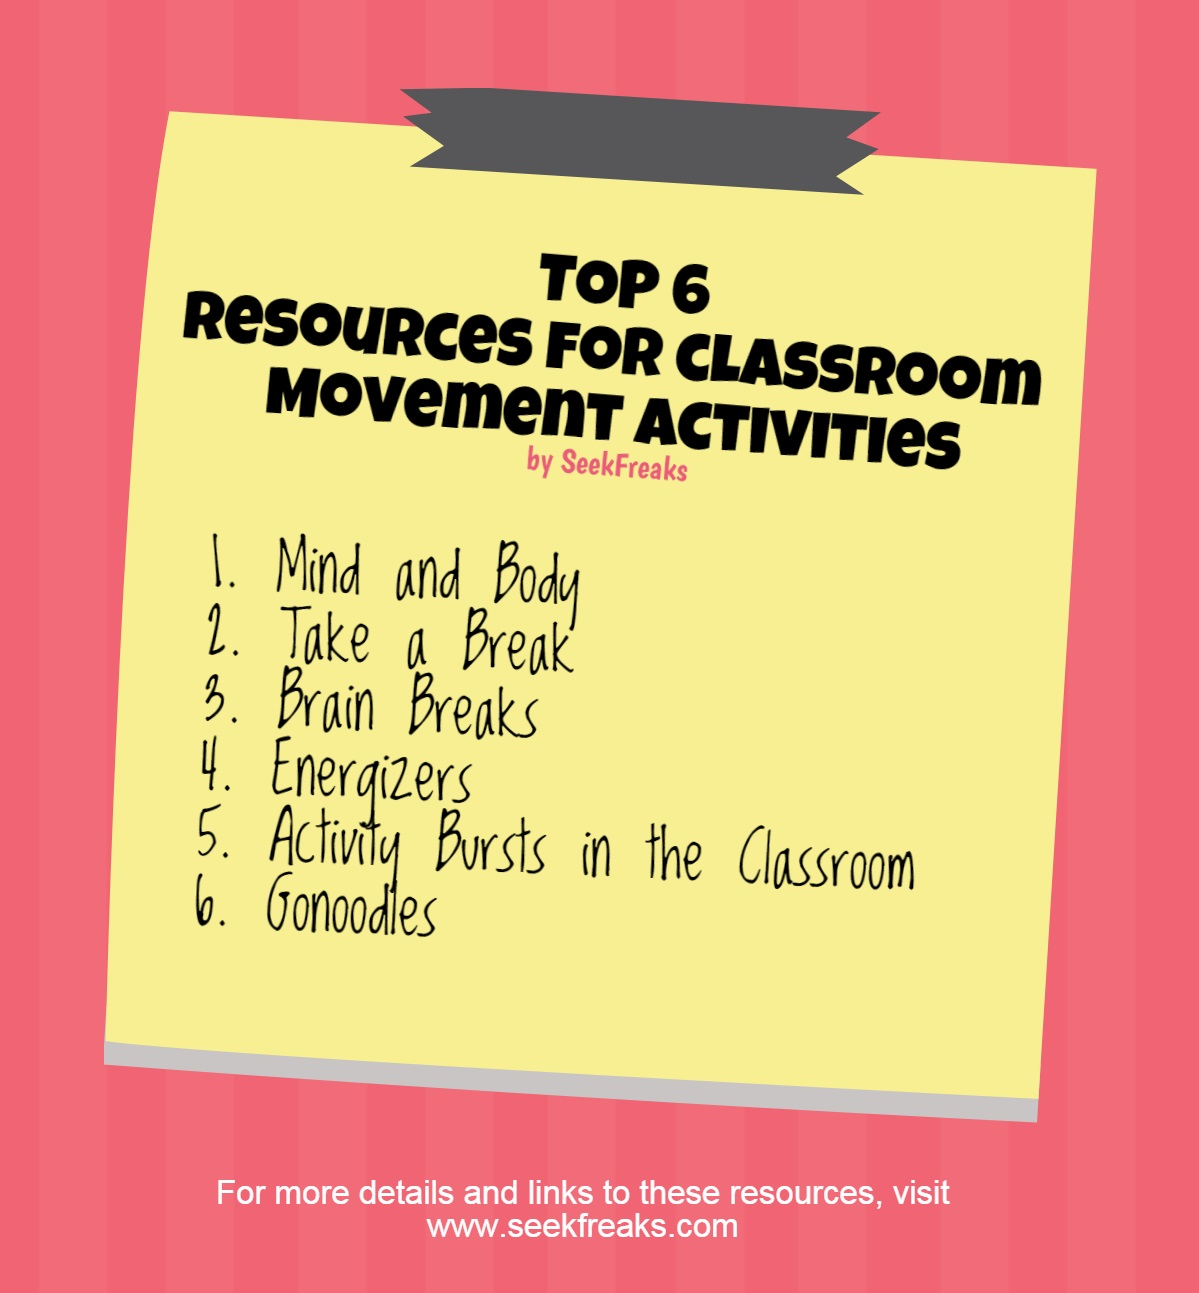 Top 6 Resources for Movement Activities in the Classroom